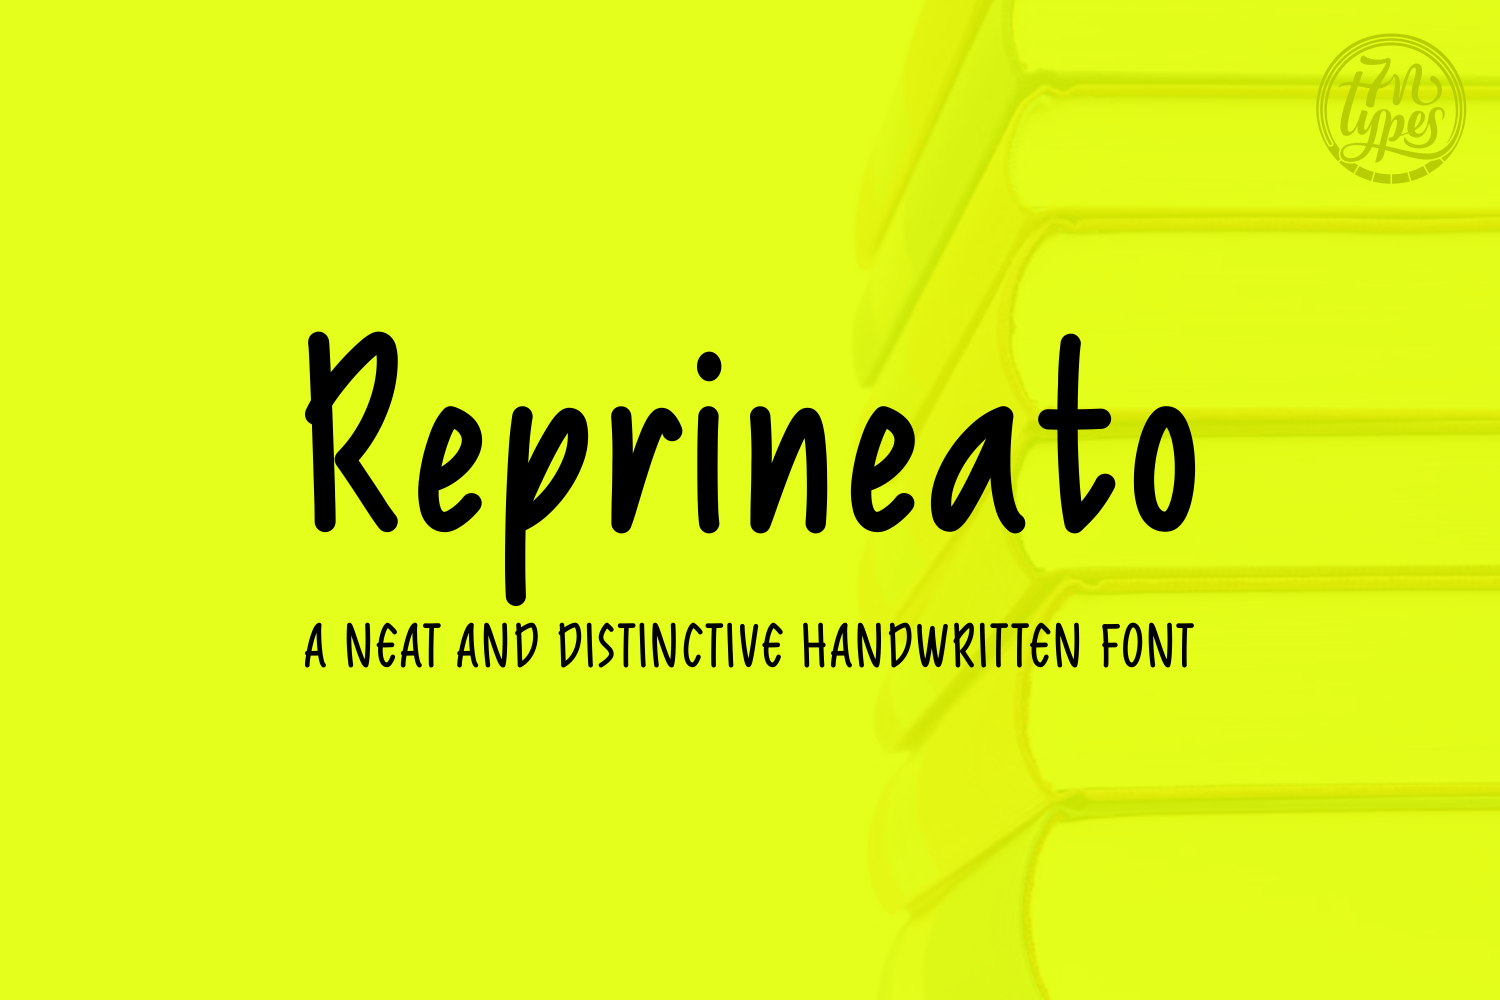 Reprineato Script & Handwritten Font By Situjuh